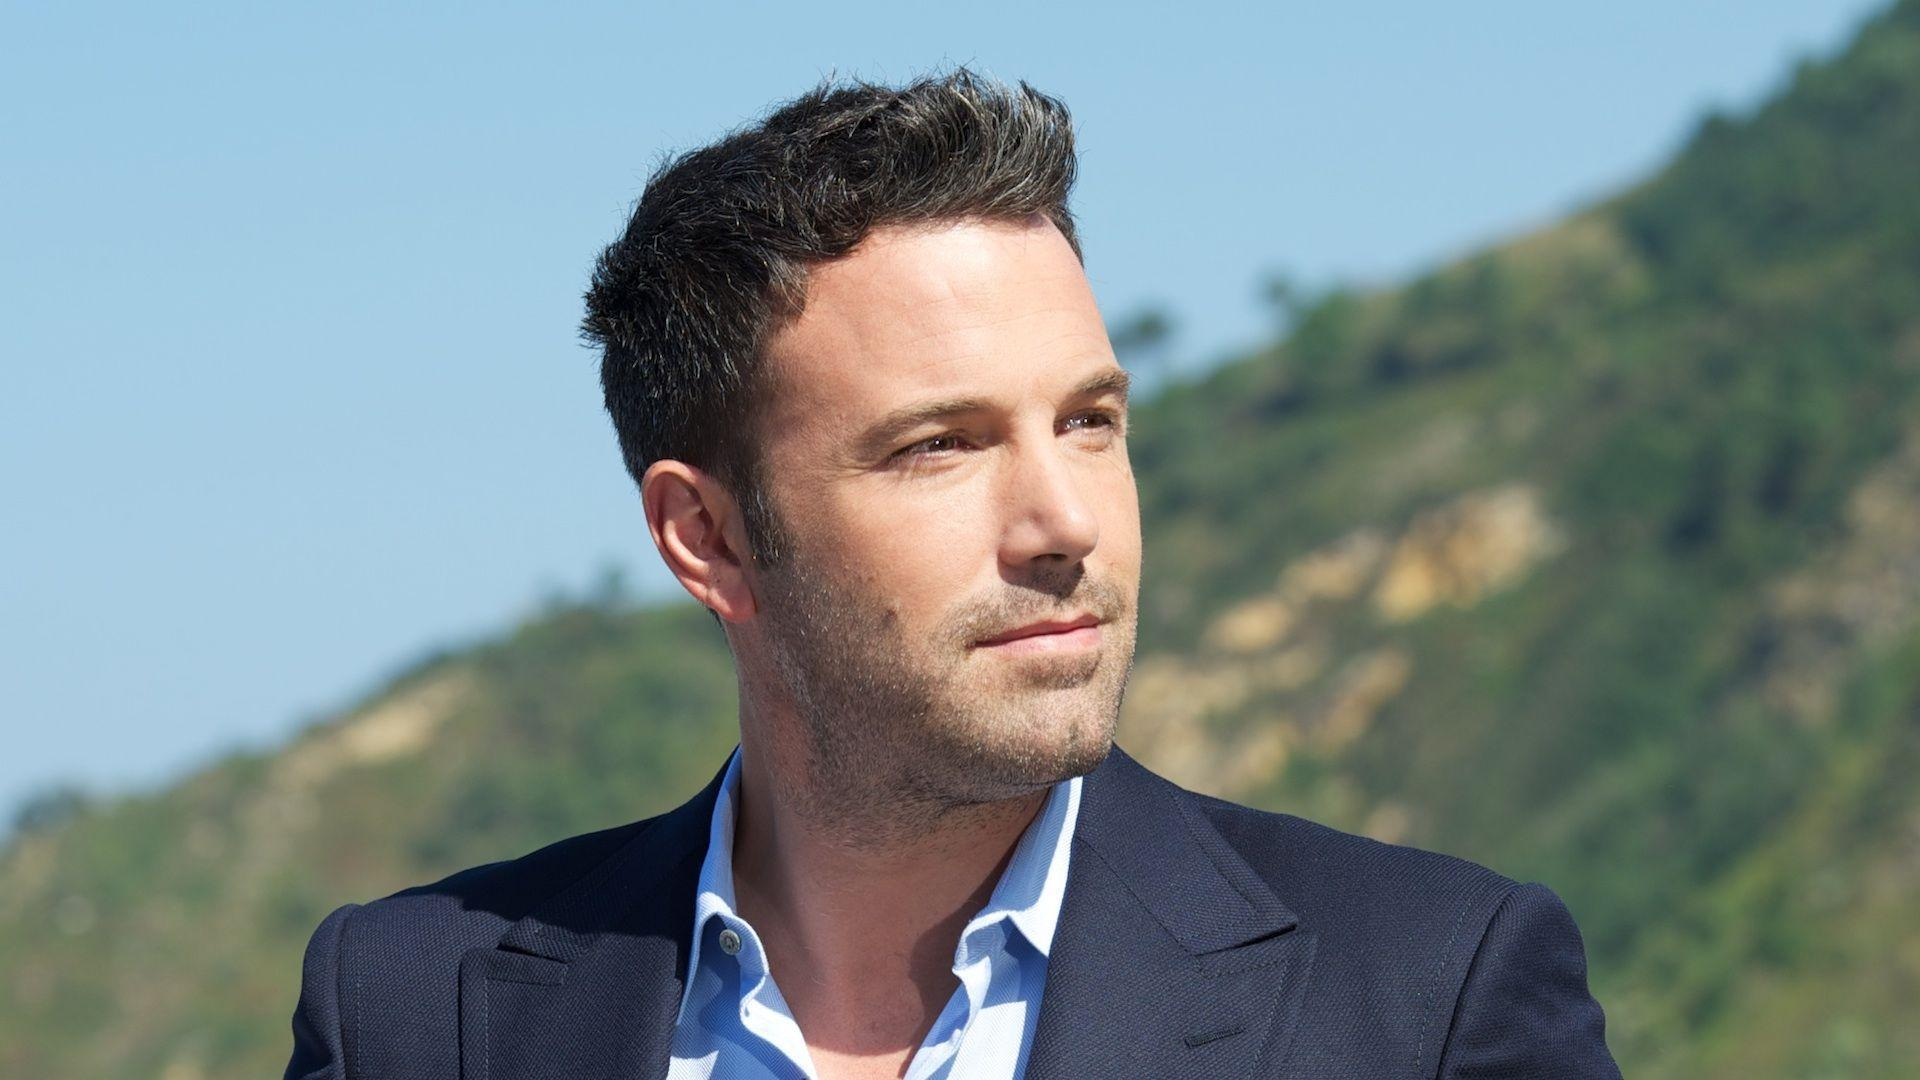 New Horror Film Casting Ben Affleck Type Actor - ClaimFame